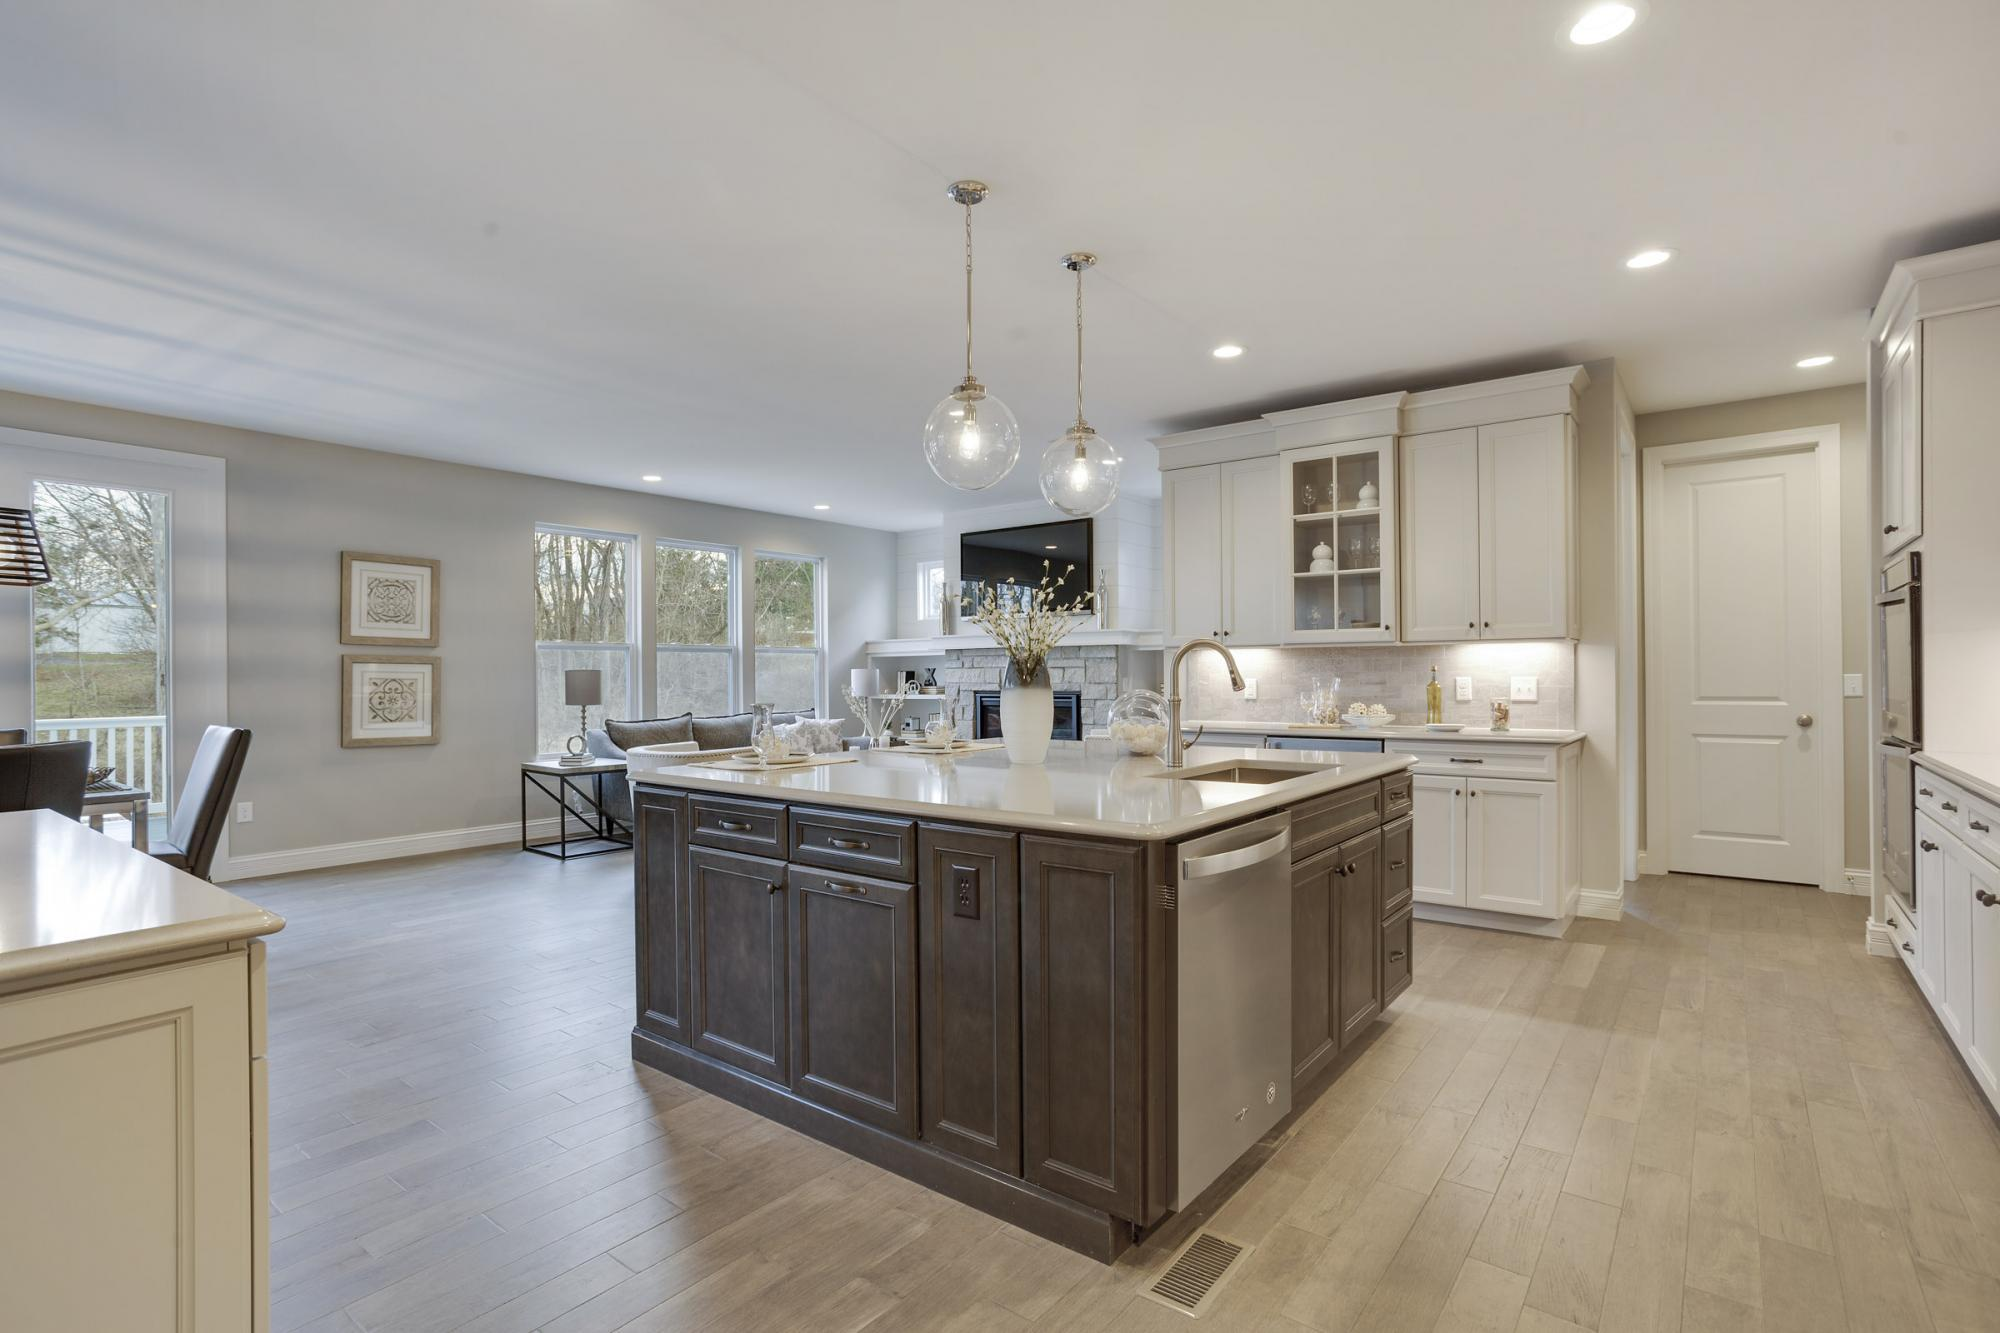 Kitchen featured in the Turnberry Side Entry By McKelvey Homes in St. Louis, MO